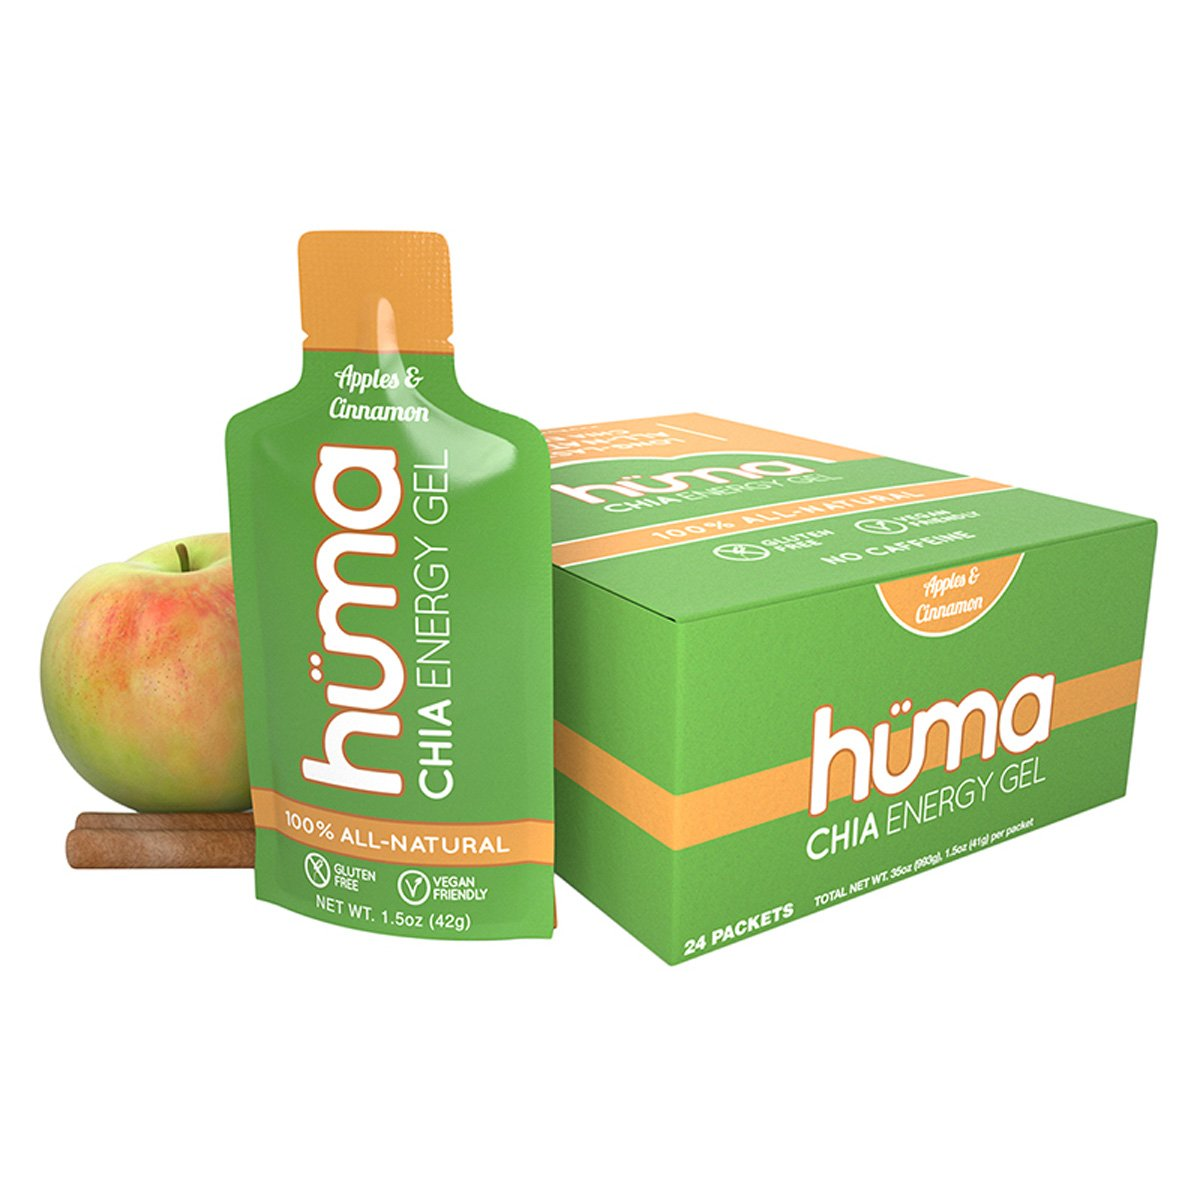 HUMA NUTRITION Huma Chia Energy Gel Box of 24 Apple Cinnamon Box of 24 Energy